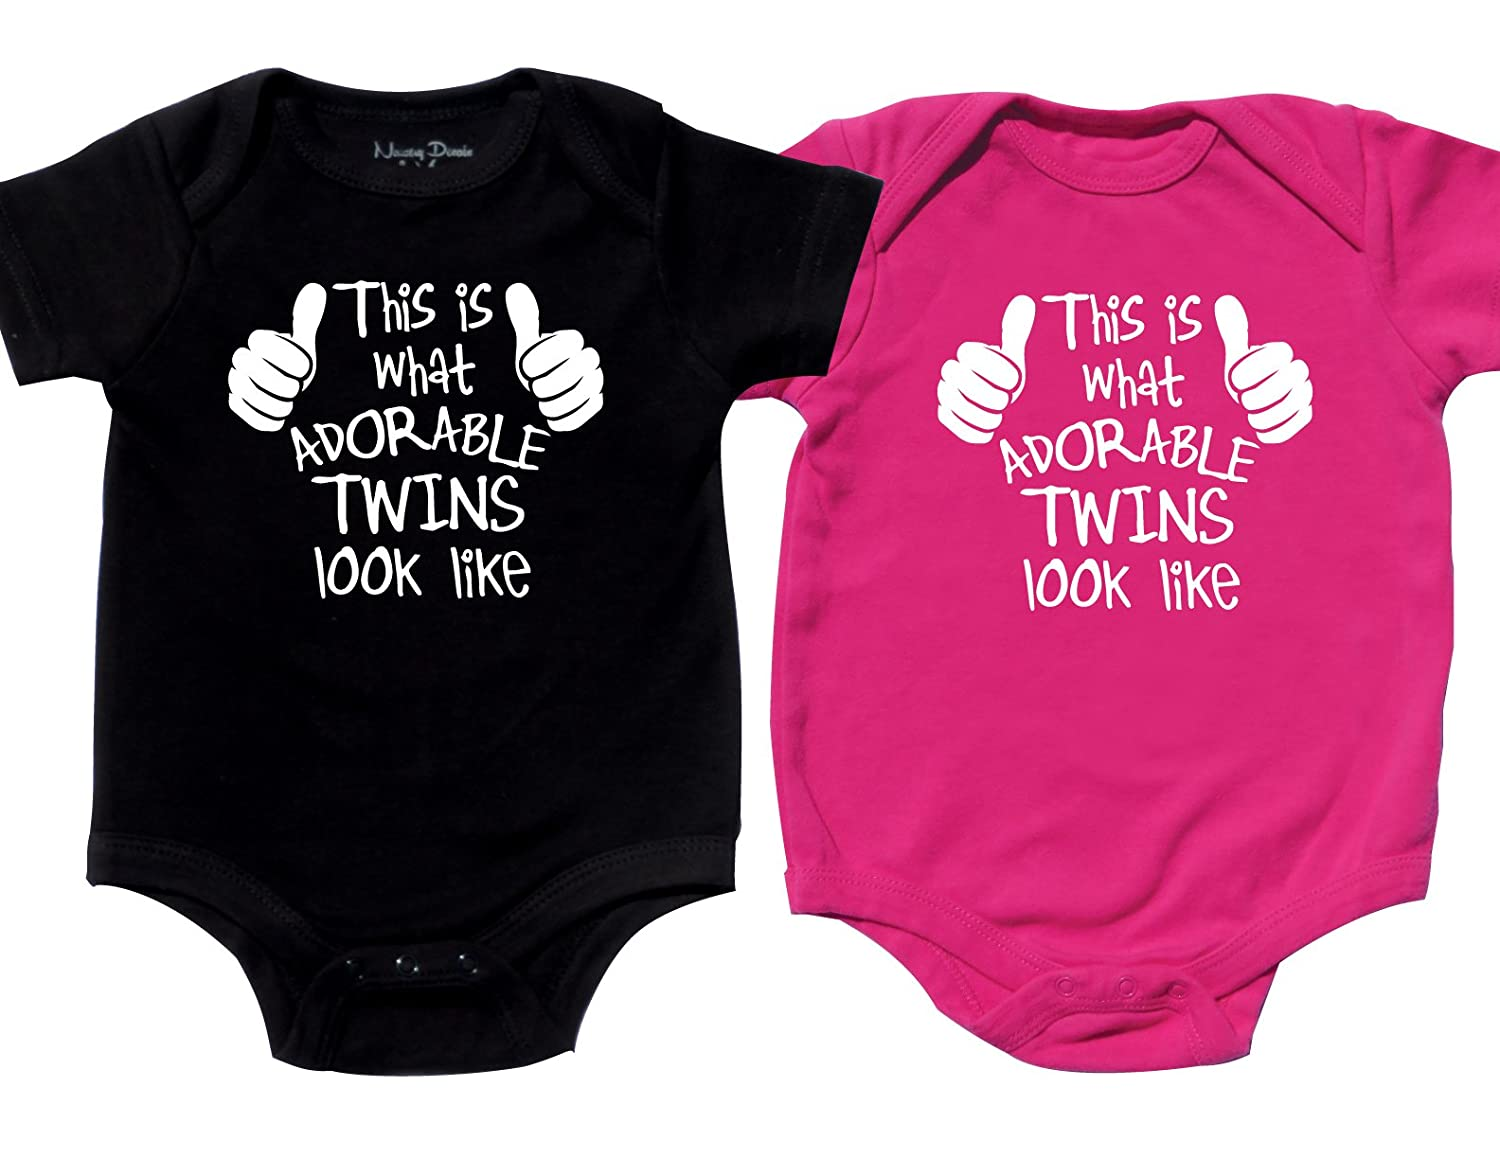 b19e0589d Top4: Nursery Decals and More Twin Boy and Girl Bodysuits, Includes 2  Bodysuits, Keep Calm, Monkey See, She Did It